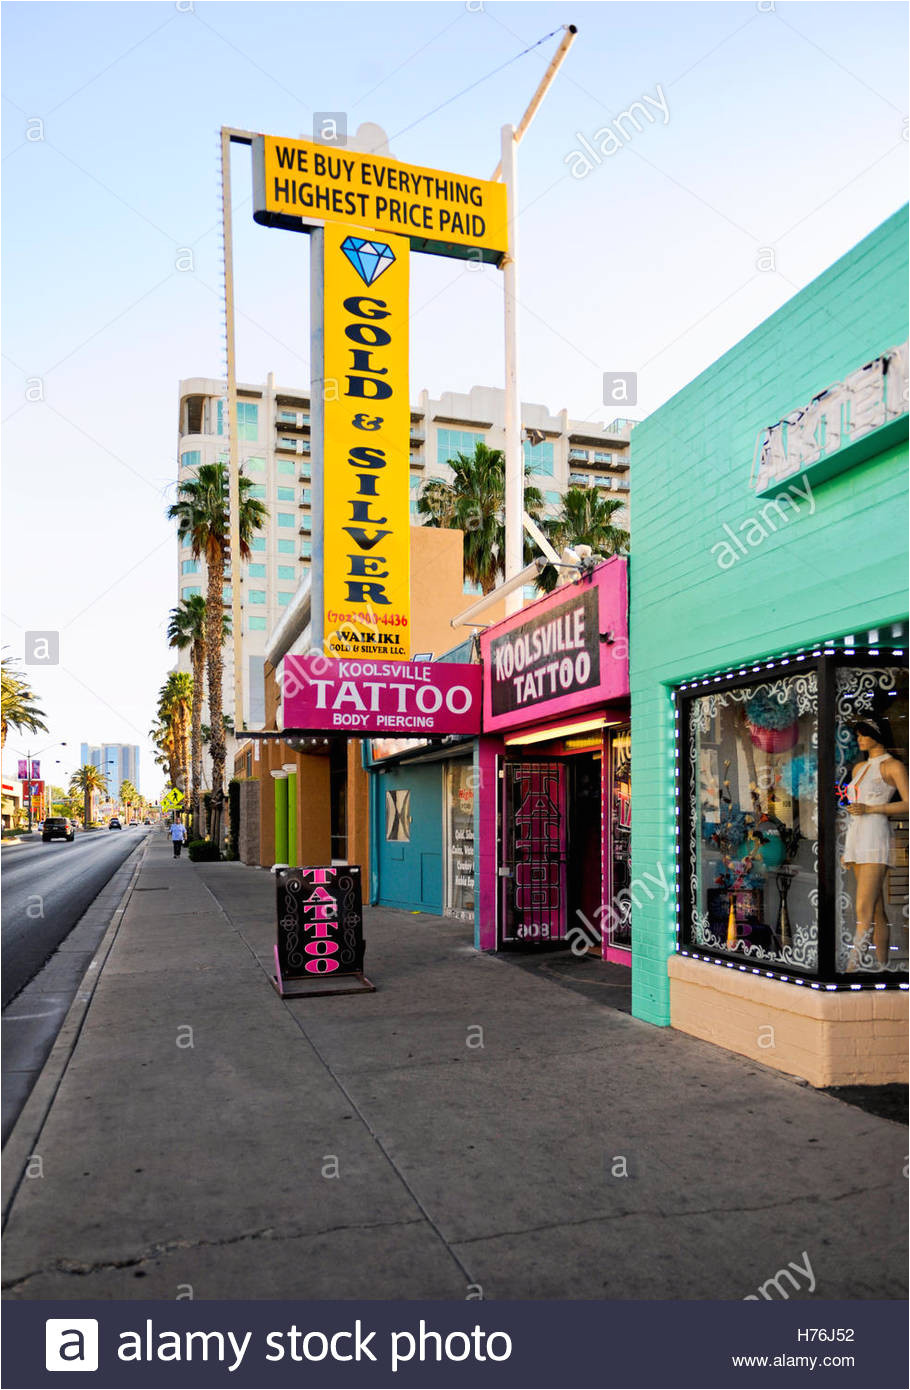 pawn shop and other storefronts at dusk in downtown las vegas nevada stock image